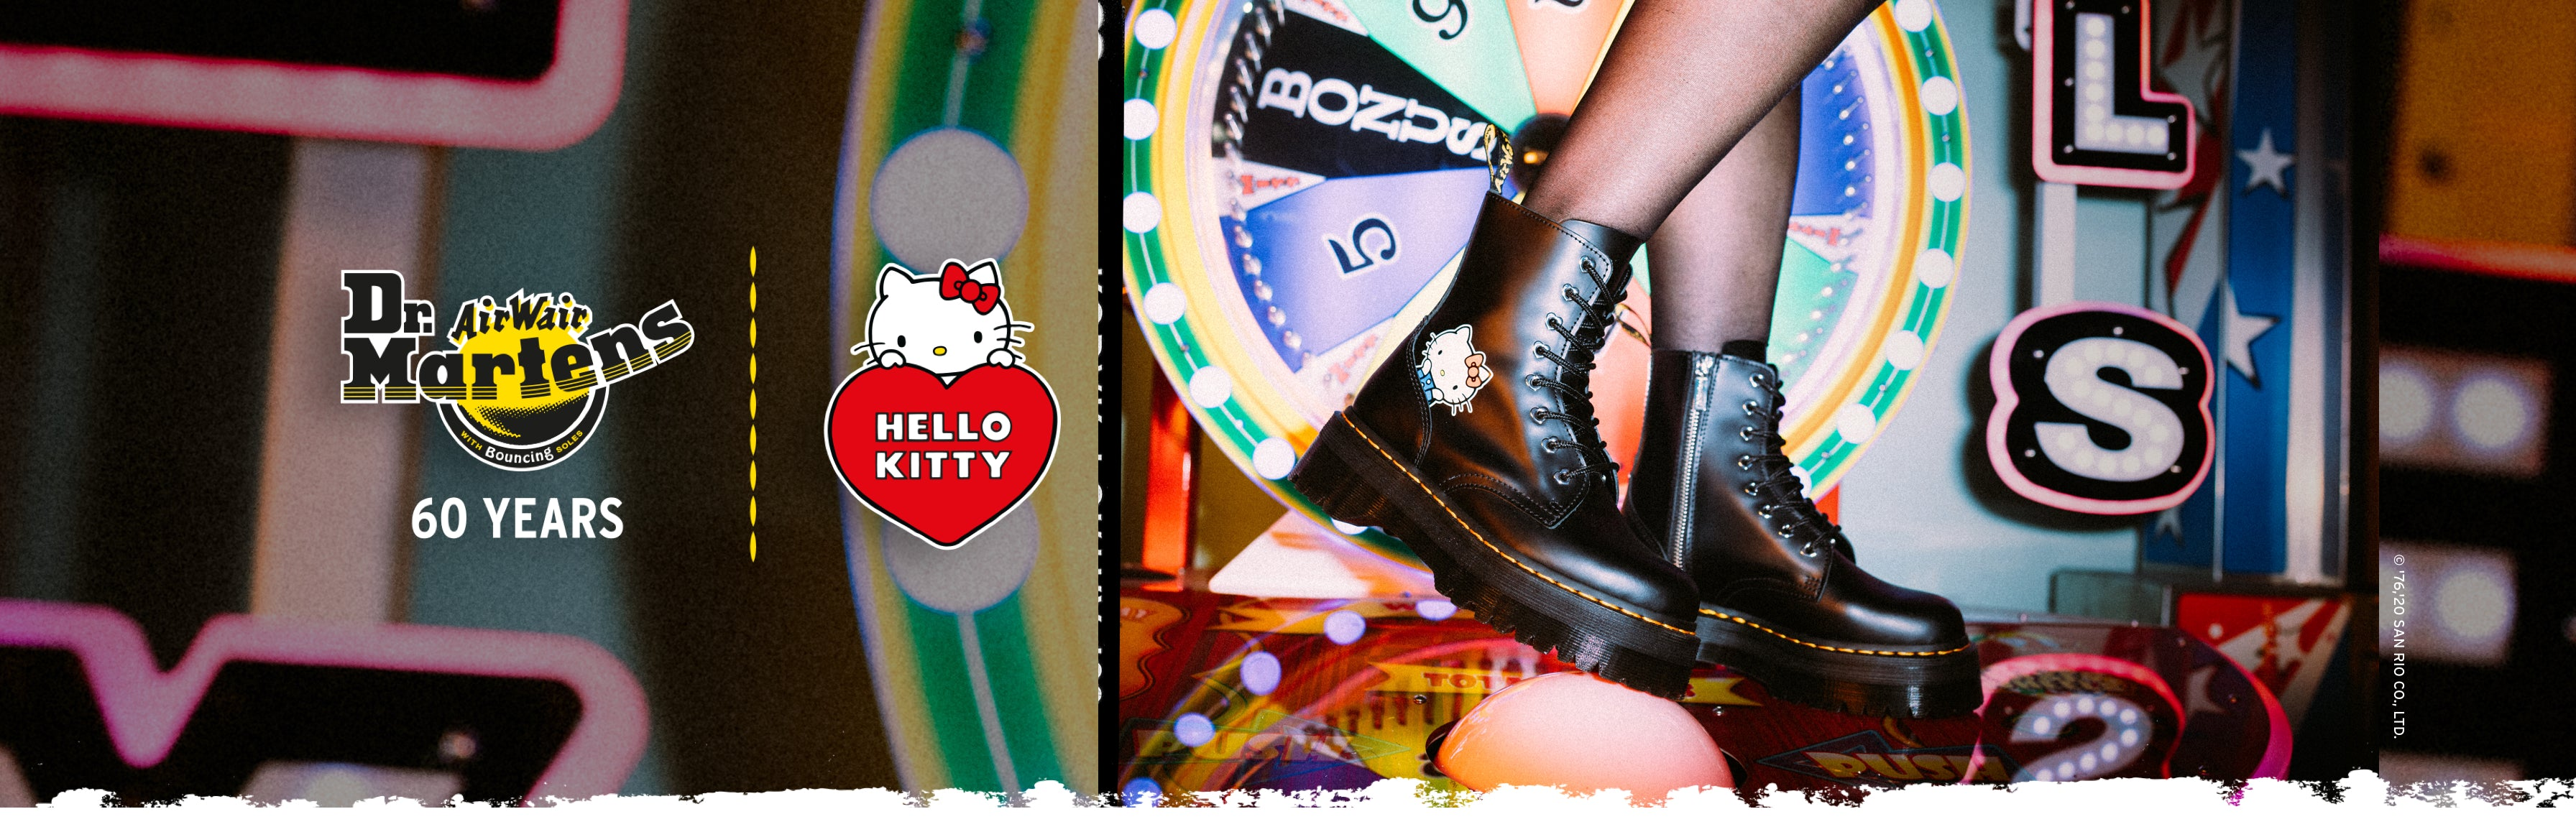 DR MARTENS X HELLO KITTY